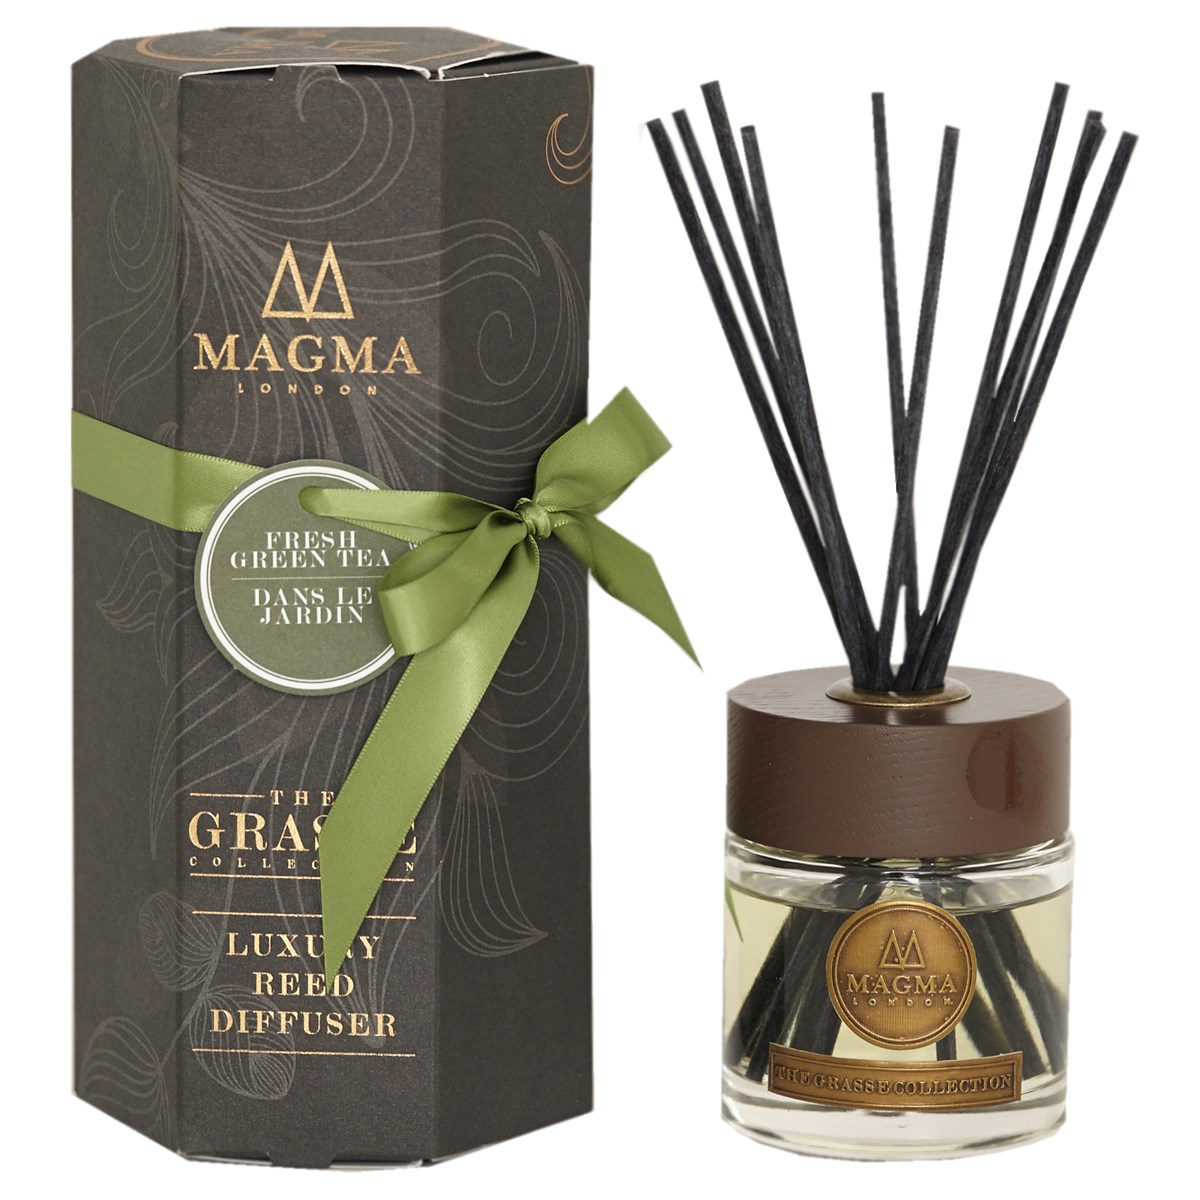 Echemist Co Uk Magma London The Grasse Collection Luxury Reed